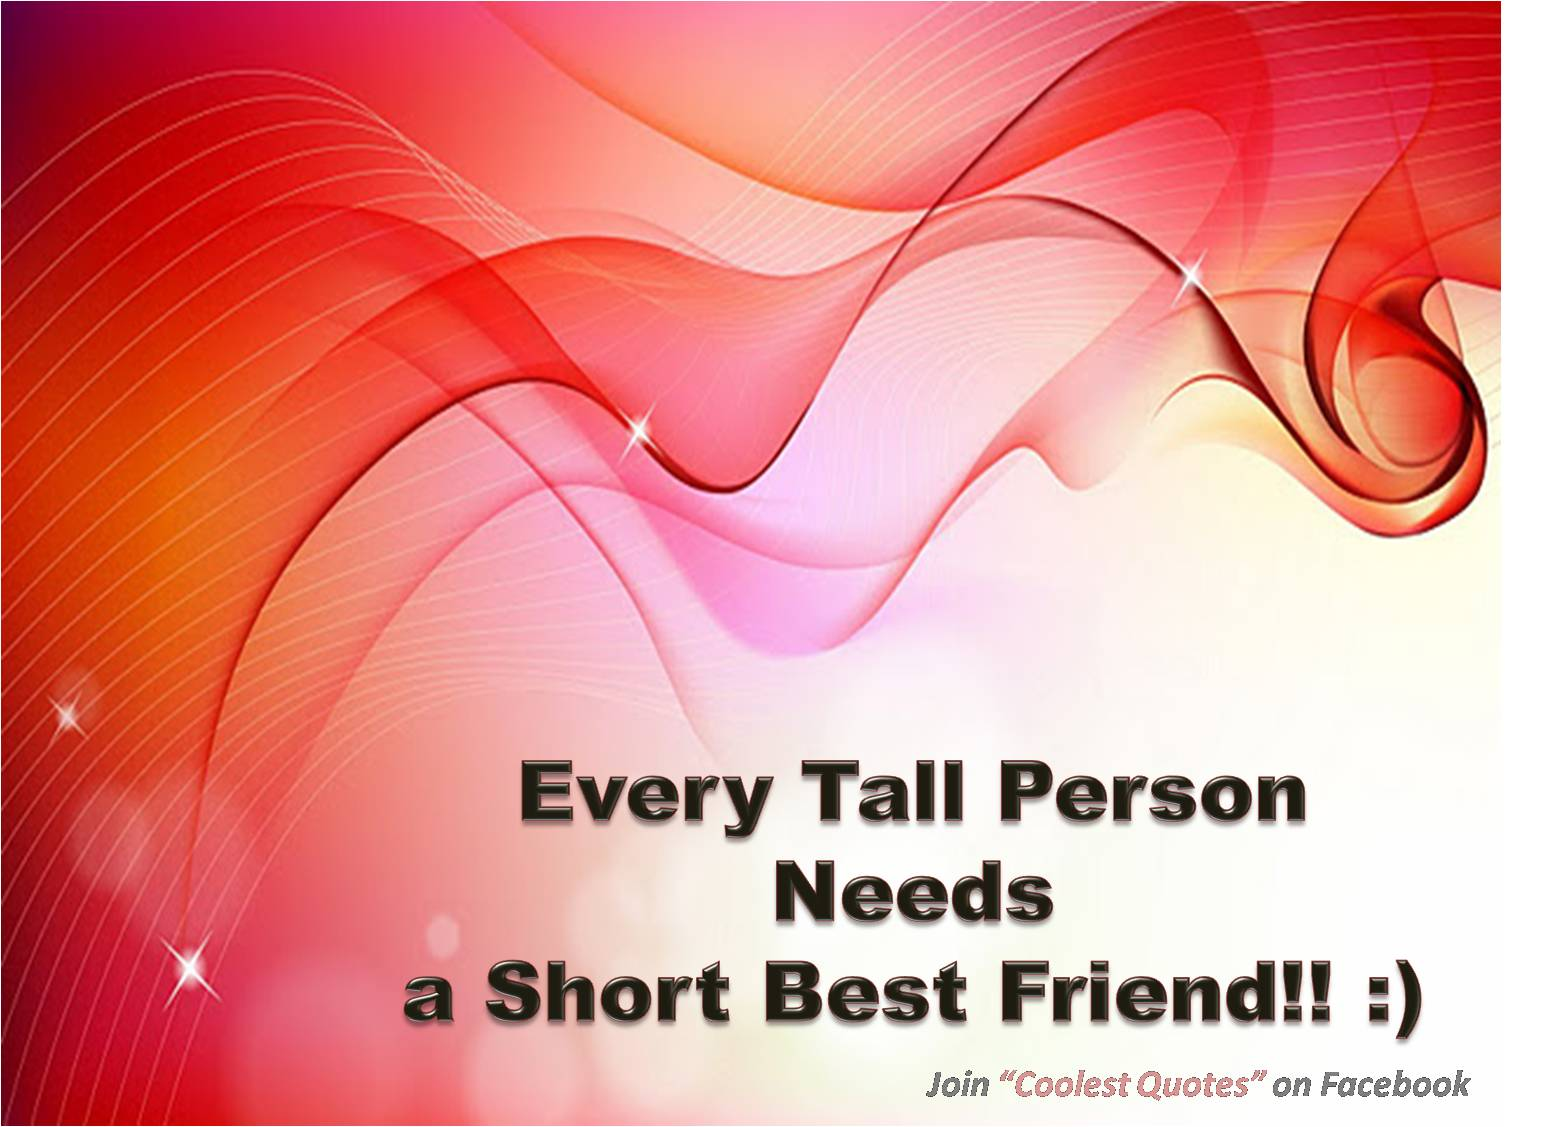 Quotes For Tall And Short Friends : More than sayings tall person needs a short best friend